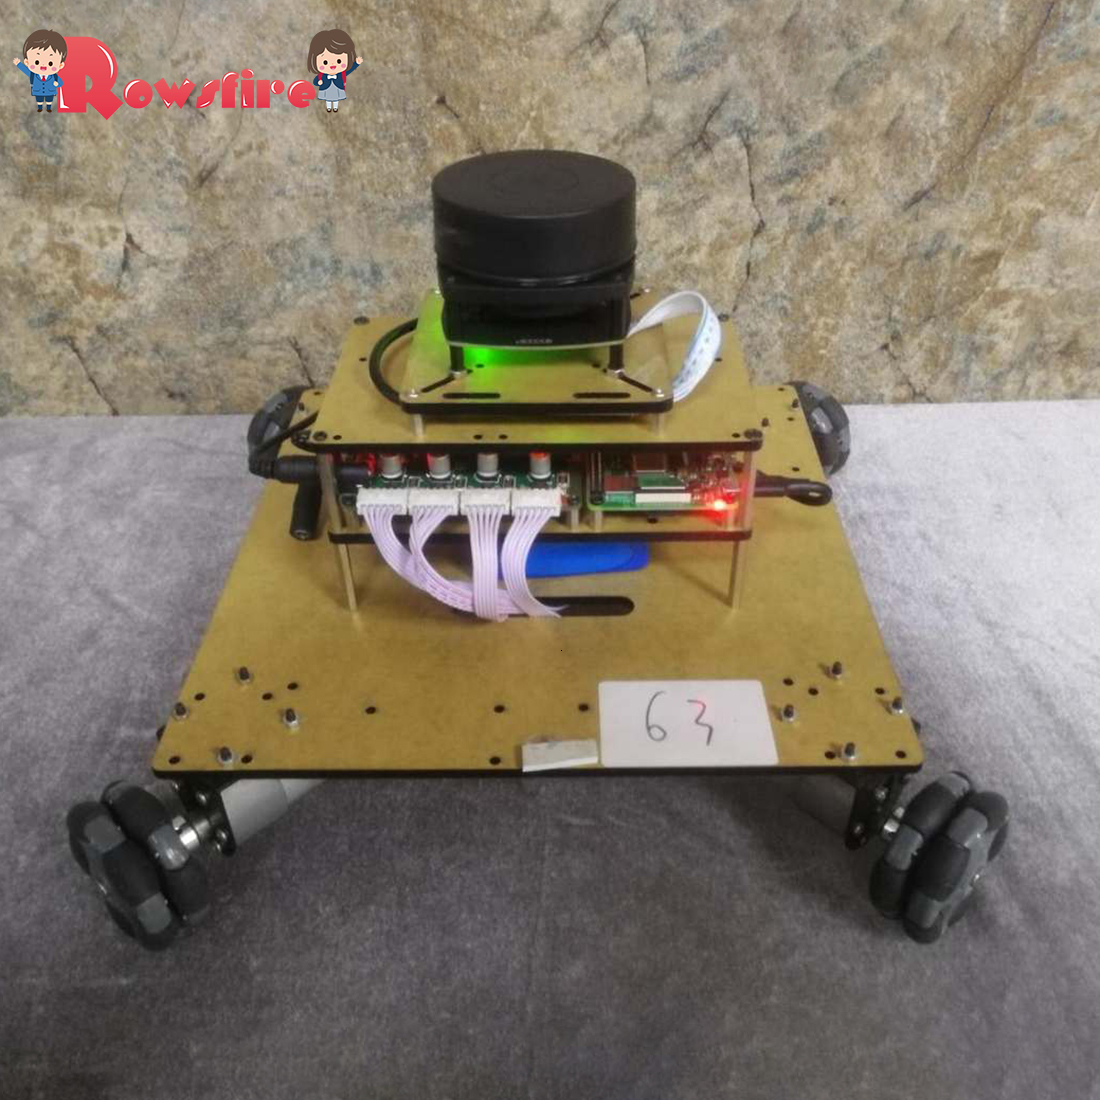 Super Quality Robot Operating System Ailibot Omnidirectional Robot Car Kit - 04 Version